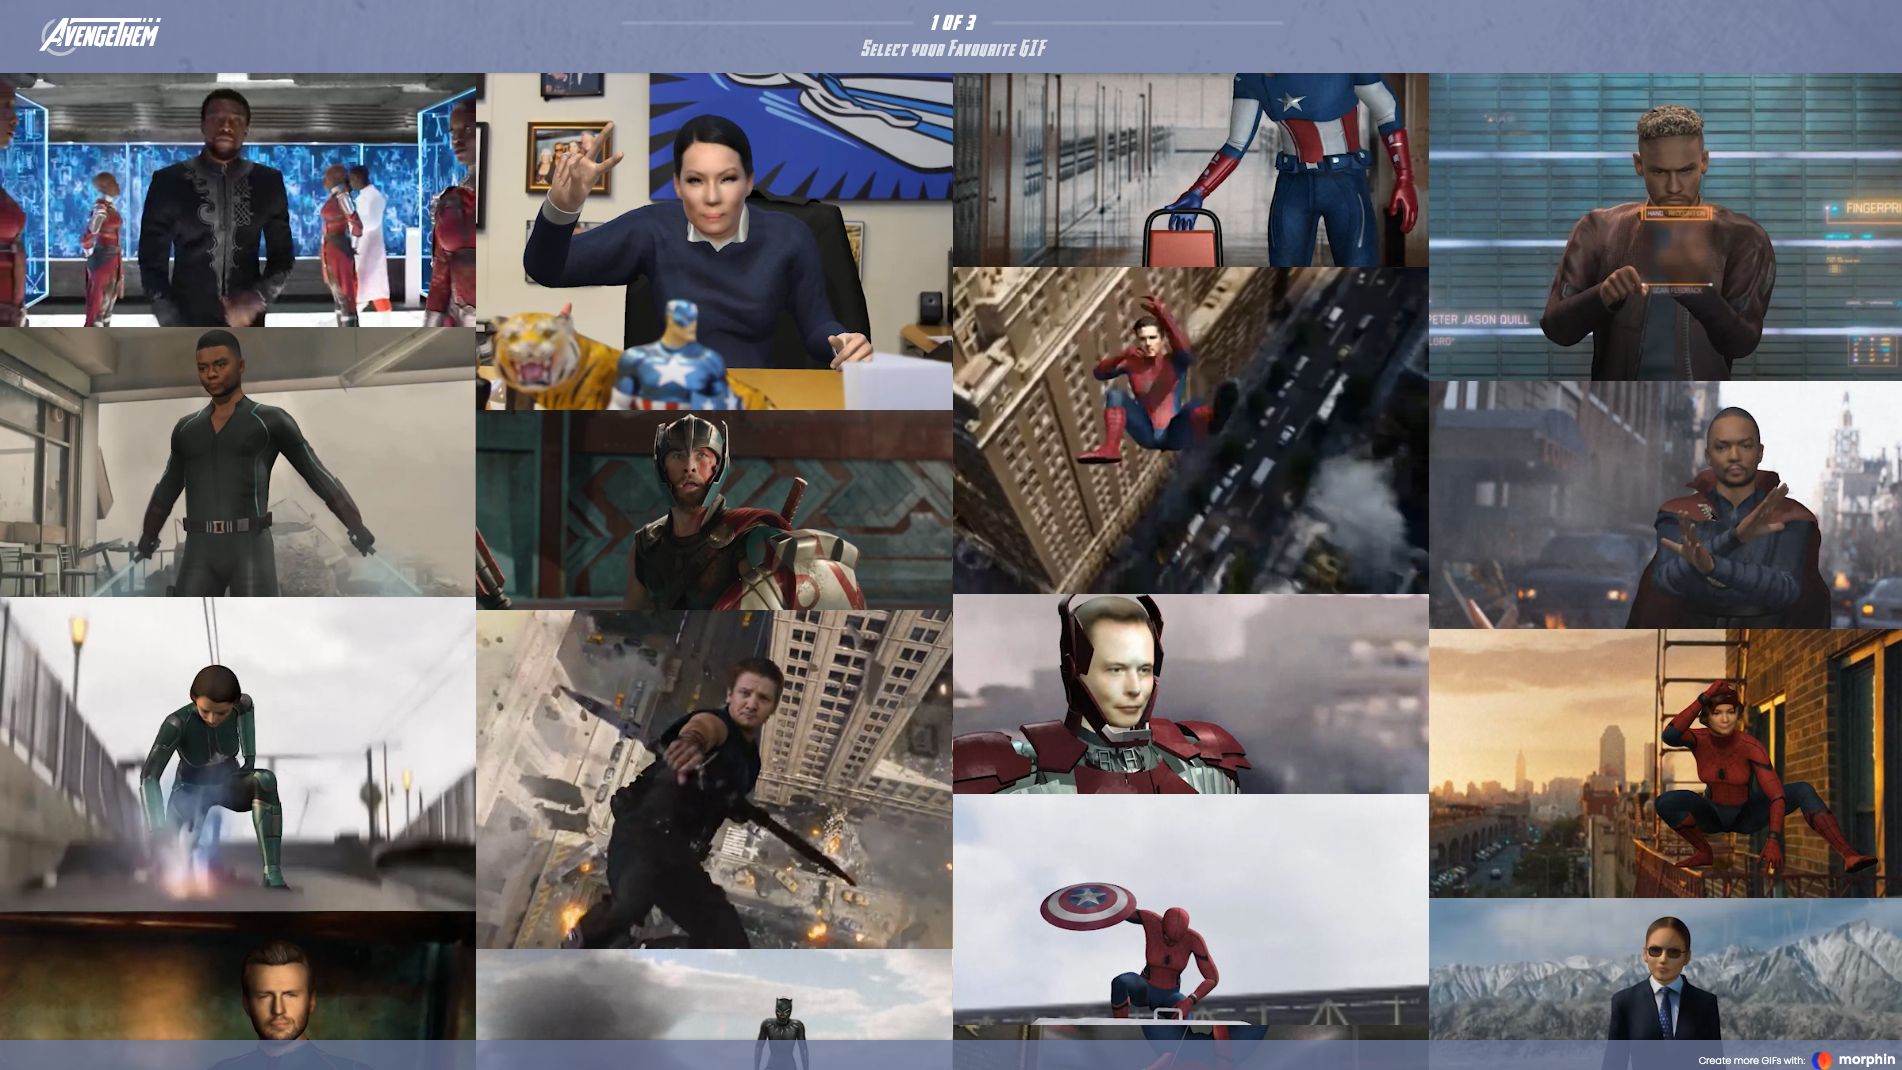 Become your favourite Avengers hero with this fun photo app